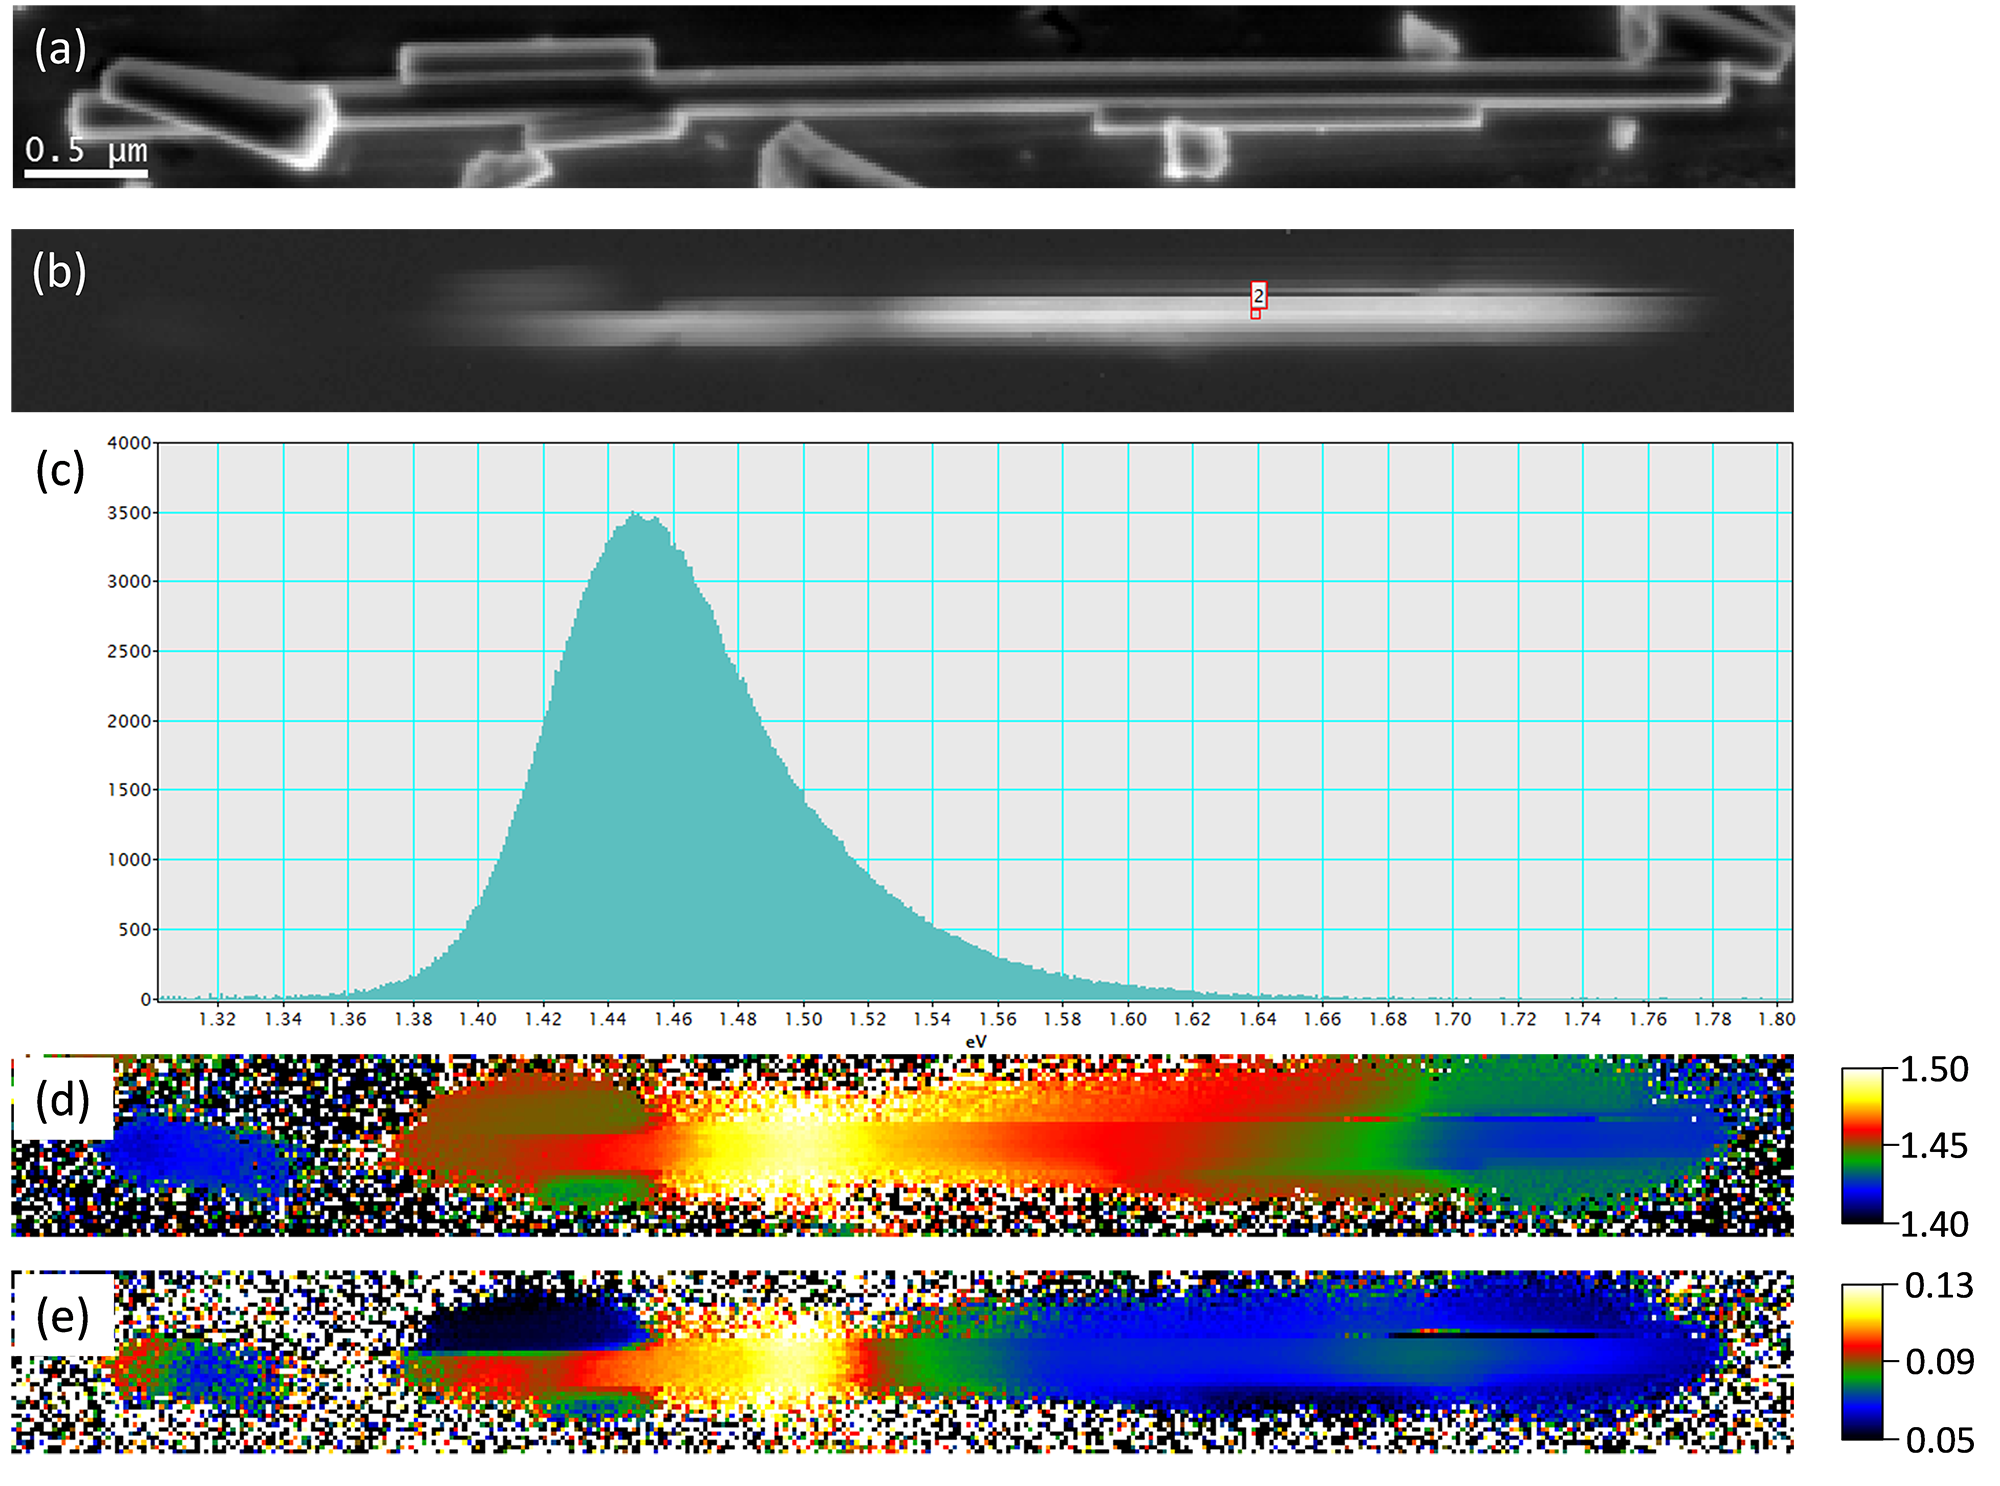 Cathodoluminescence spectrum-imaging of a gallium arsenide (GaAs) nanowire